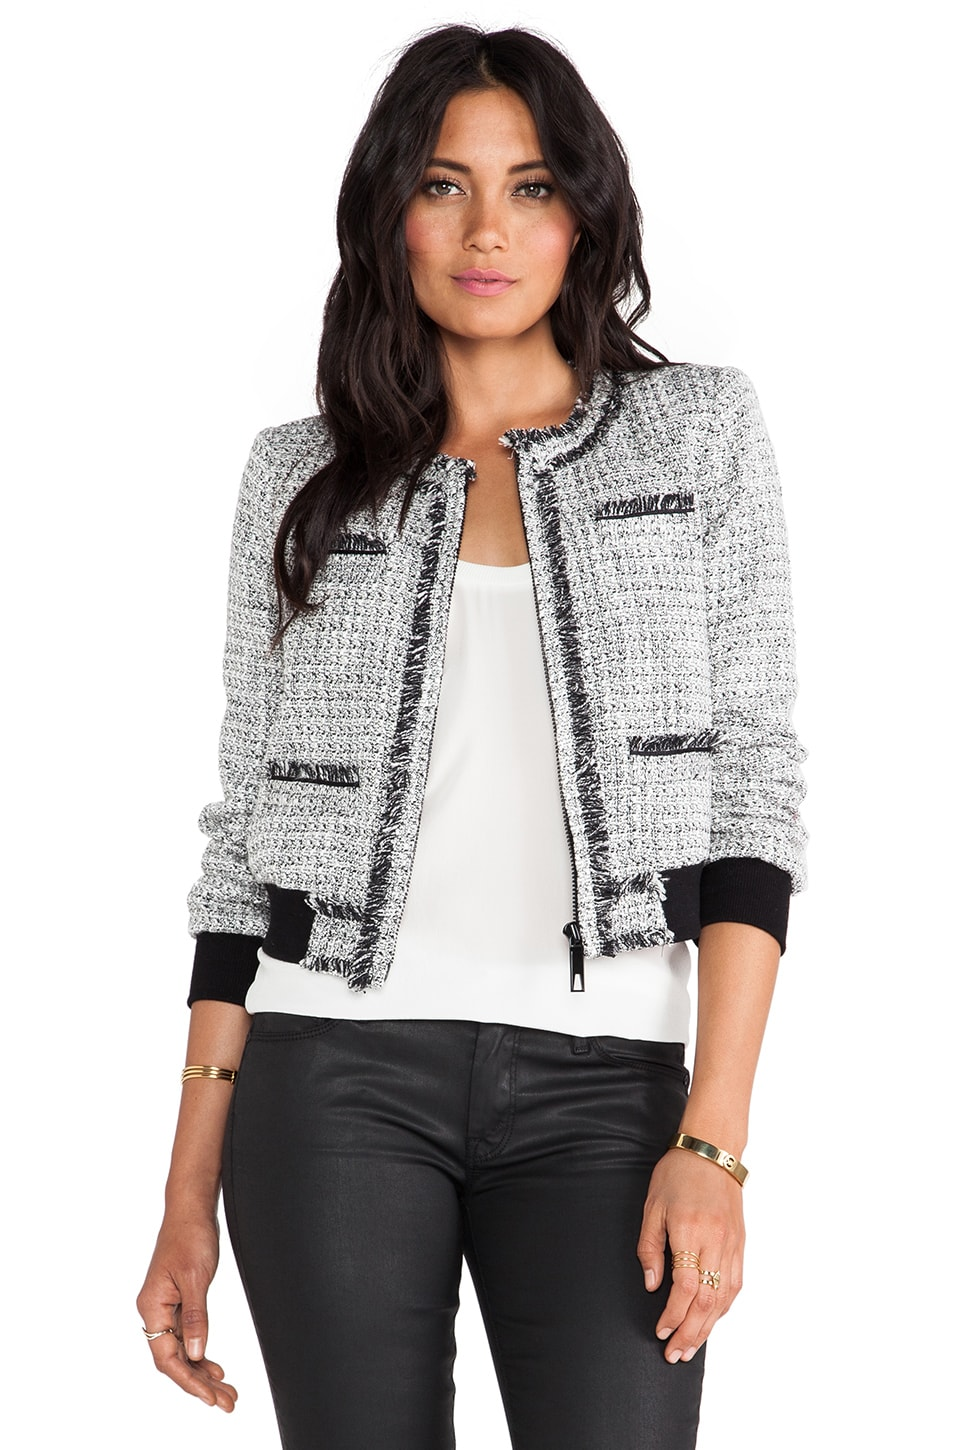 RACHEL ZOE Renata Tweed Bomber Jacket in Black & Winter White